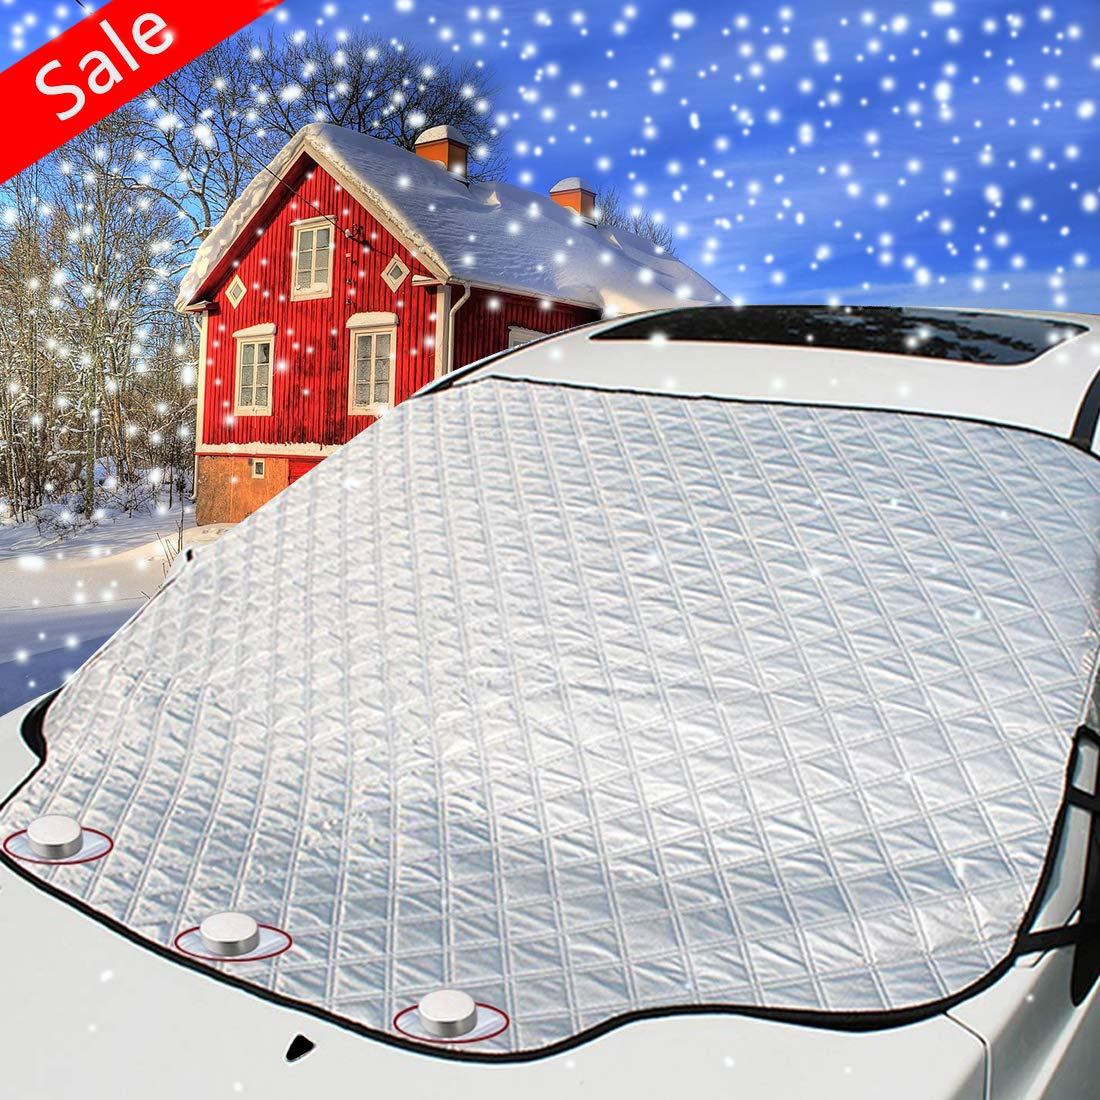 3rd Generation Windshield Snow Cover,Magnetic Edge Car Snow Cover,No More Scraping Car,for Winter Snow Ice and Frost,Heat Preservation/Antifreeze/Durable,Fits Most Car, SUV, Truck